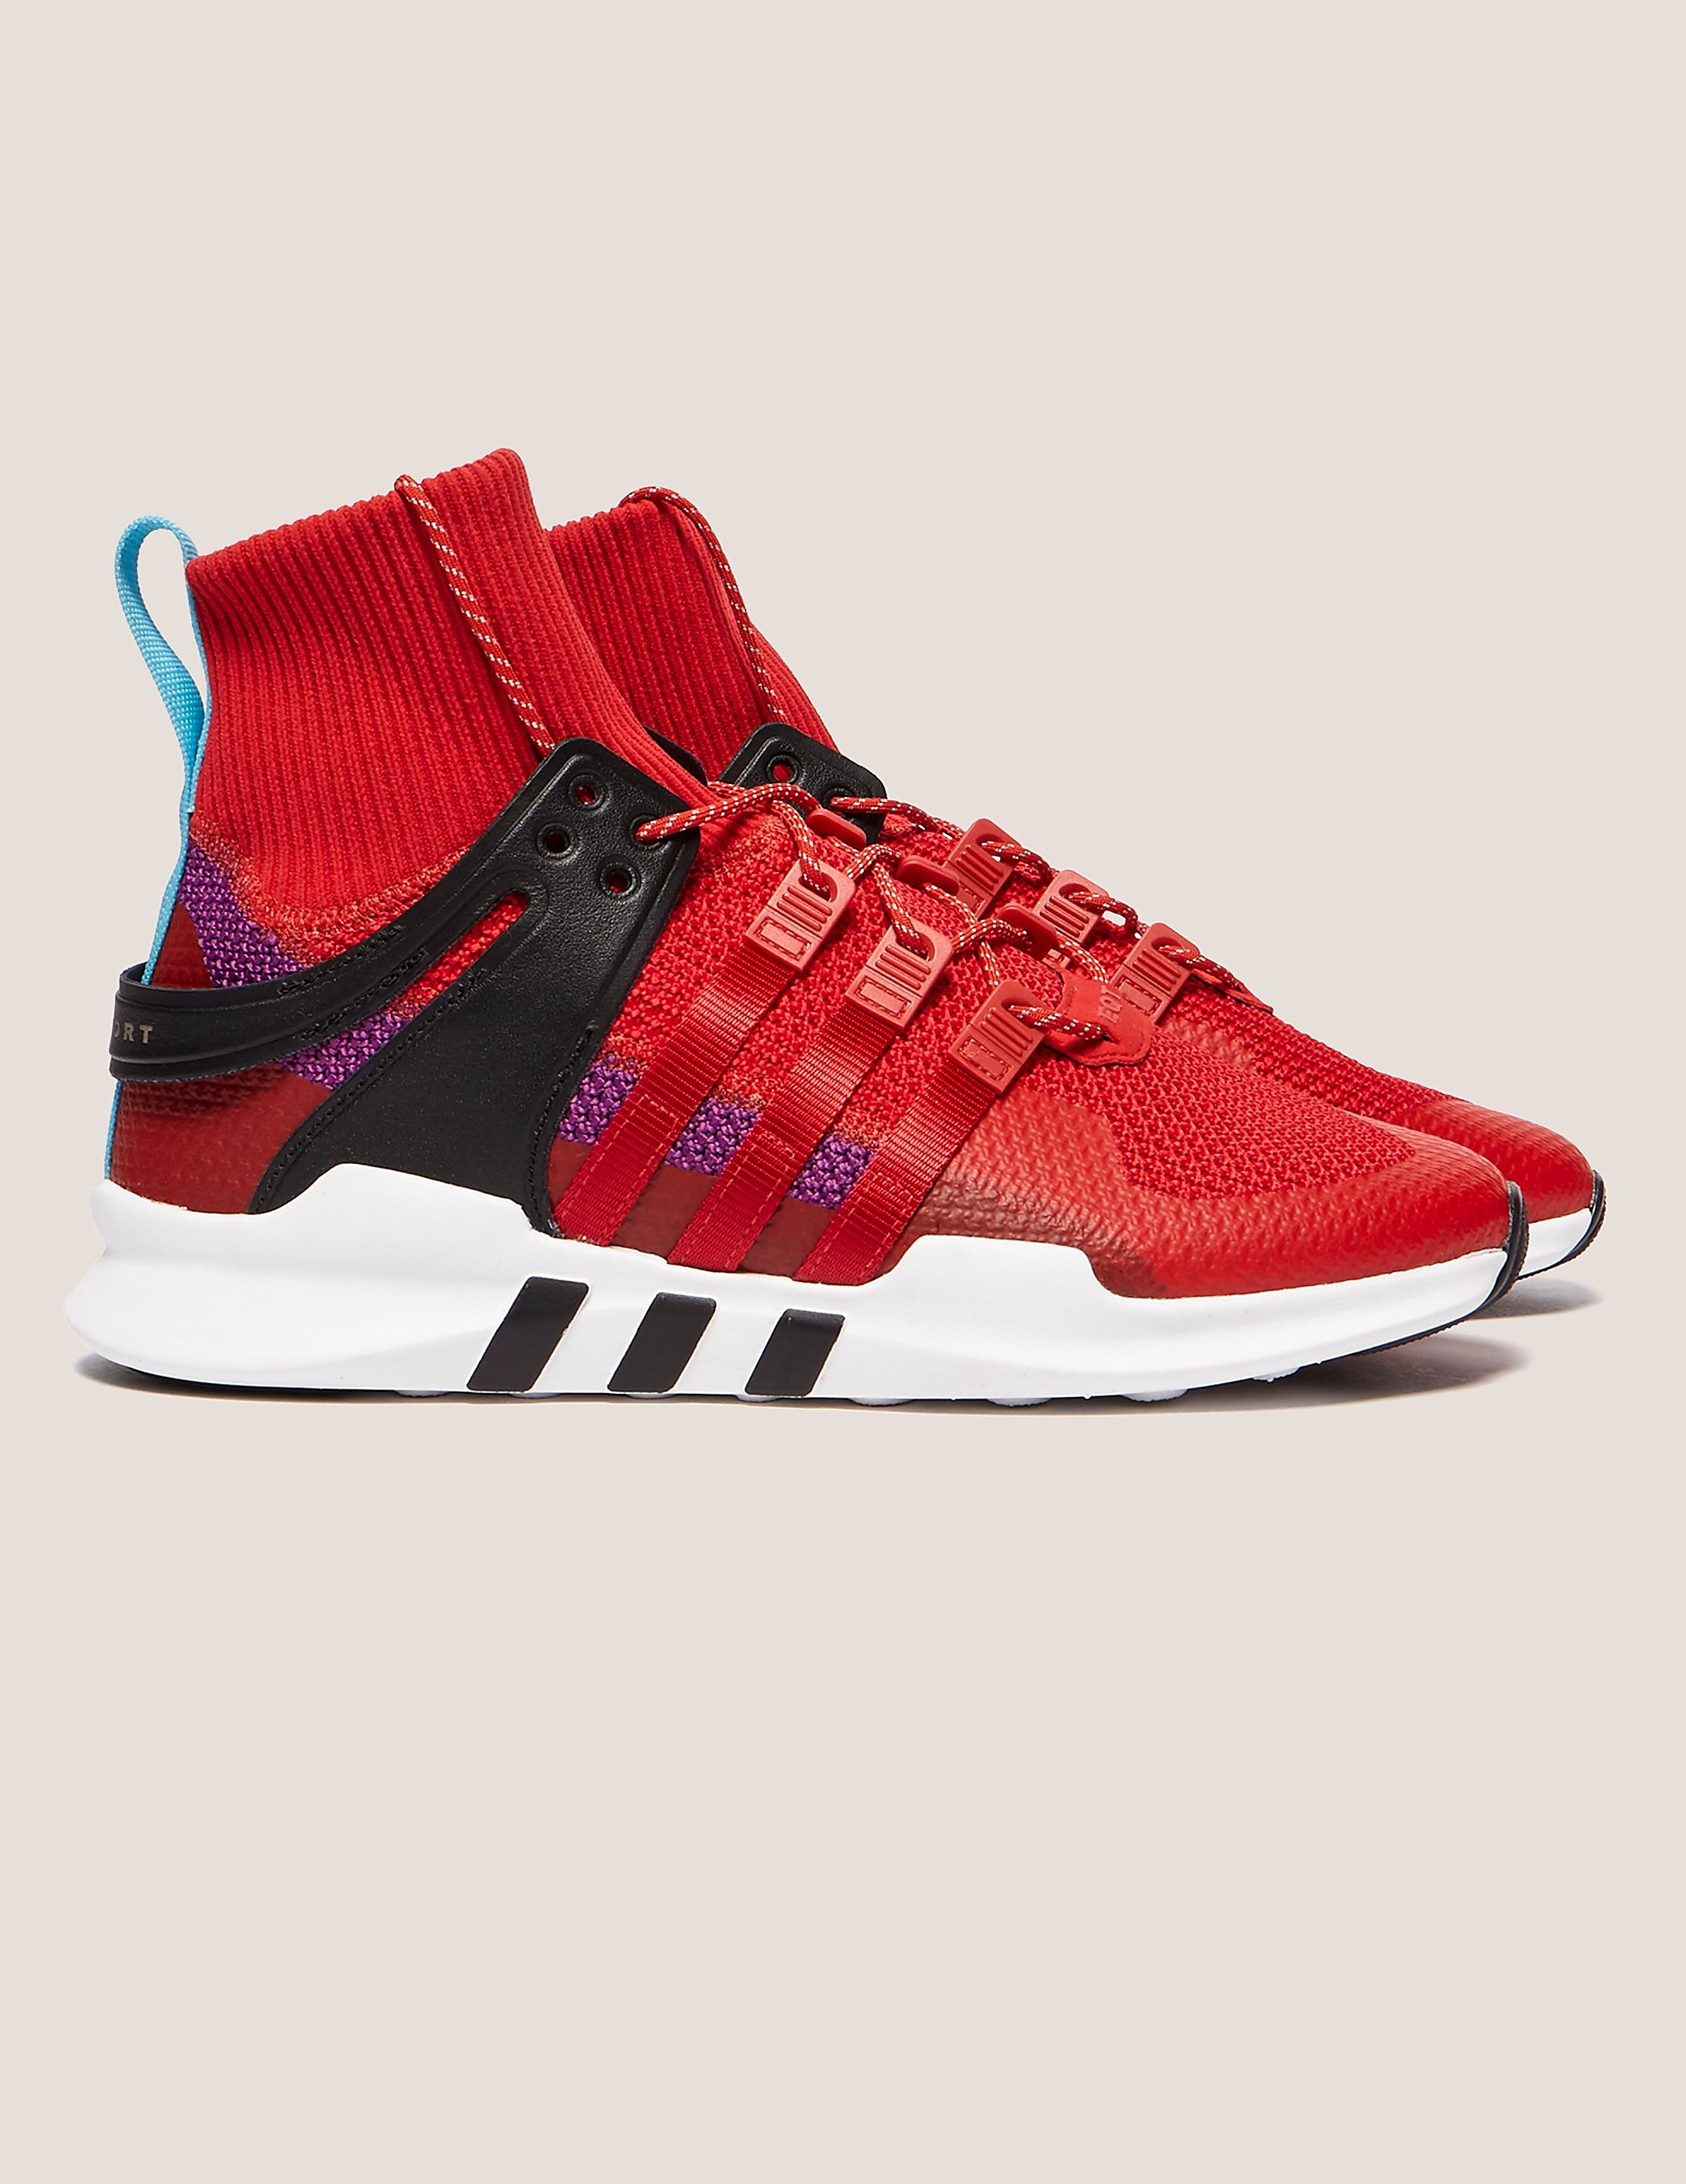 adidas Originals EQT Support ADV Winter